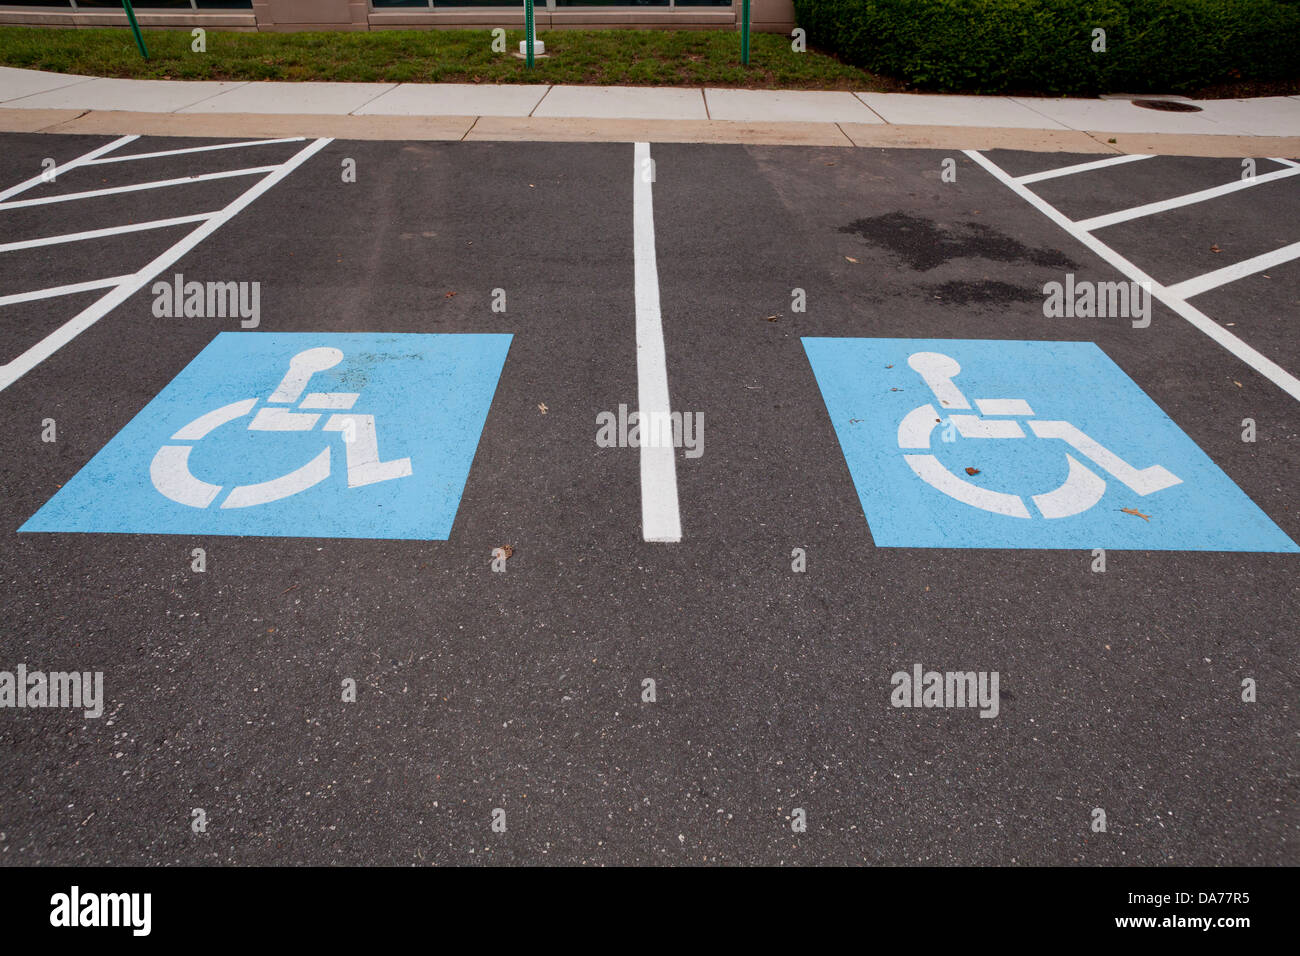 Disabled parking spaces - Stock Image